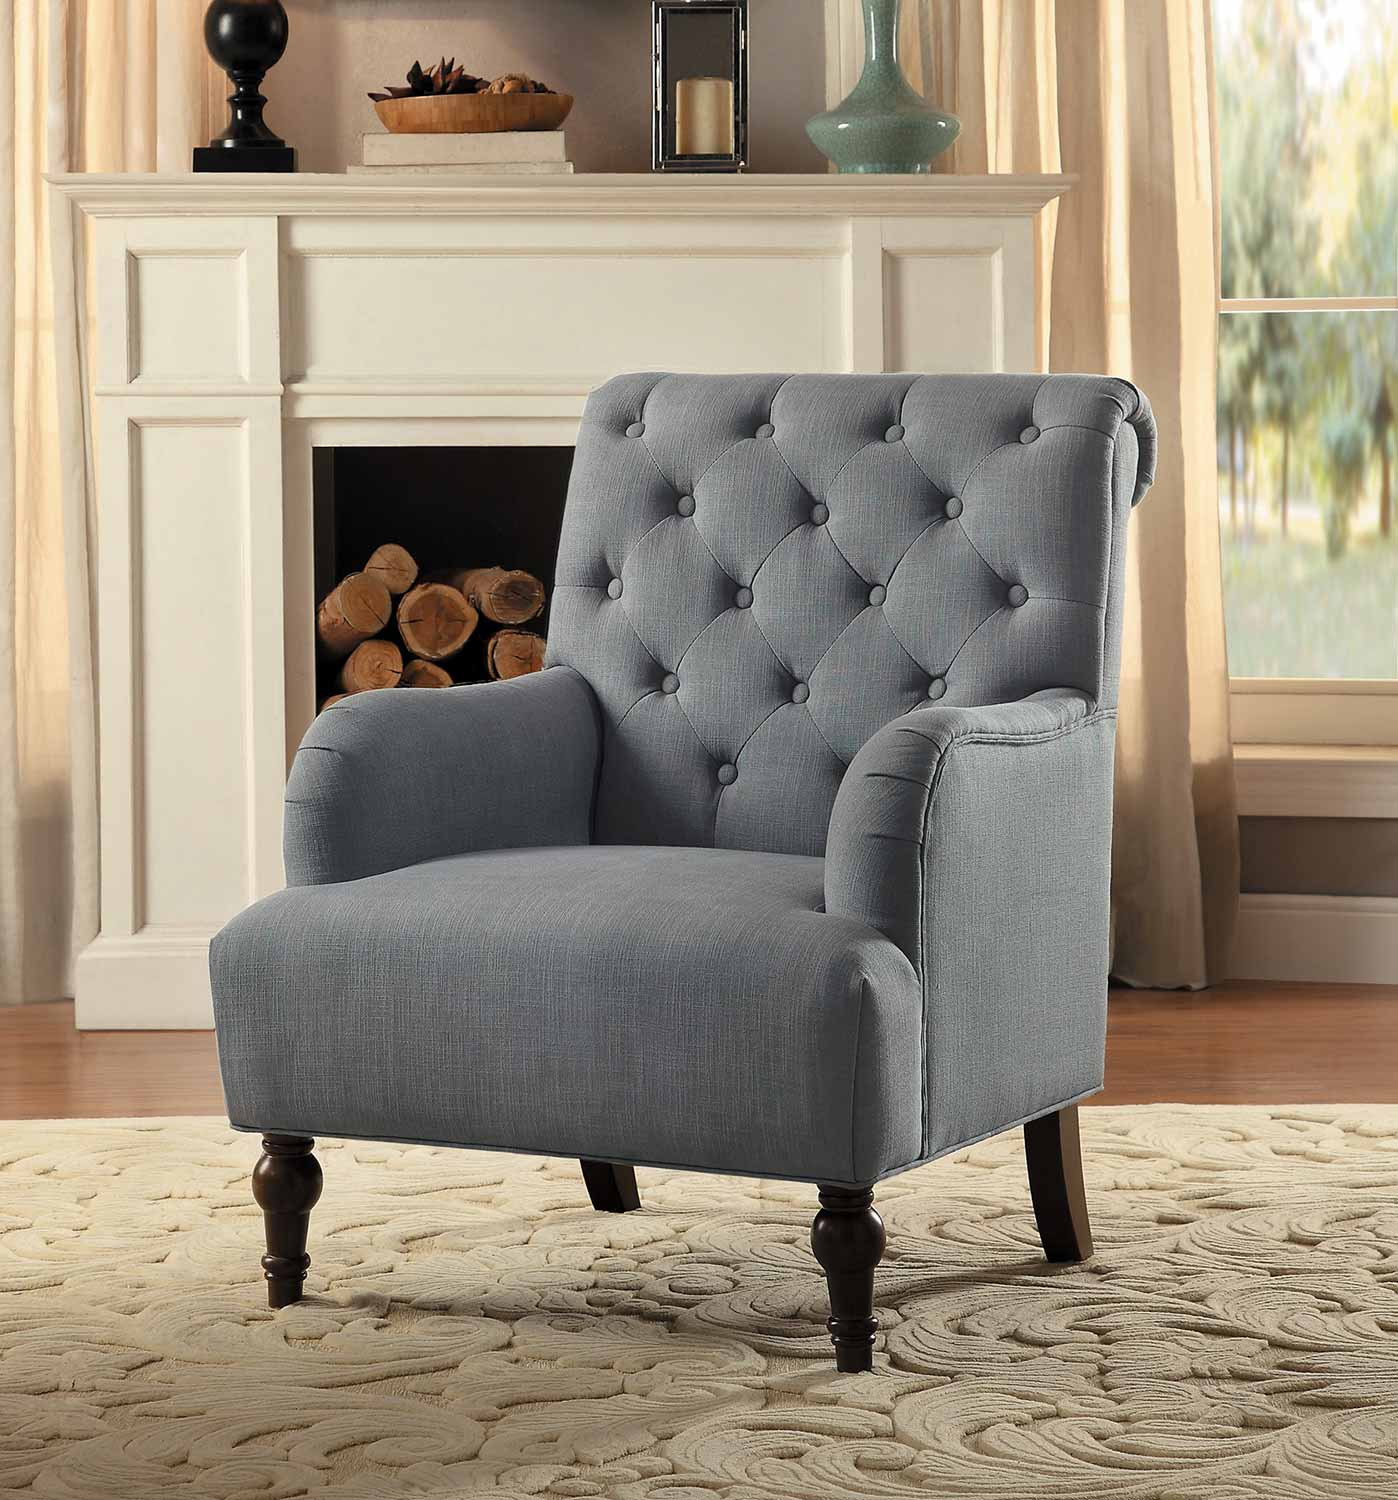 Homelegance Cotswold Accent Chair - Gray